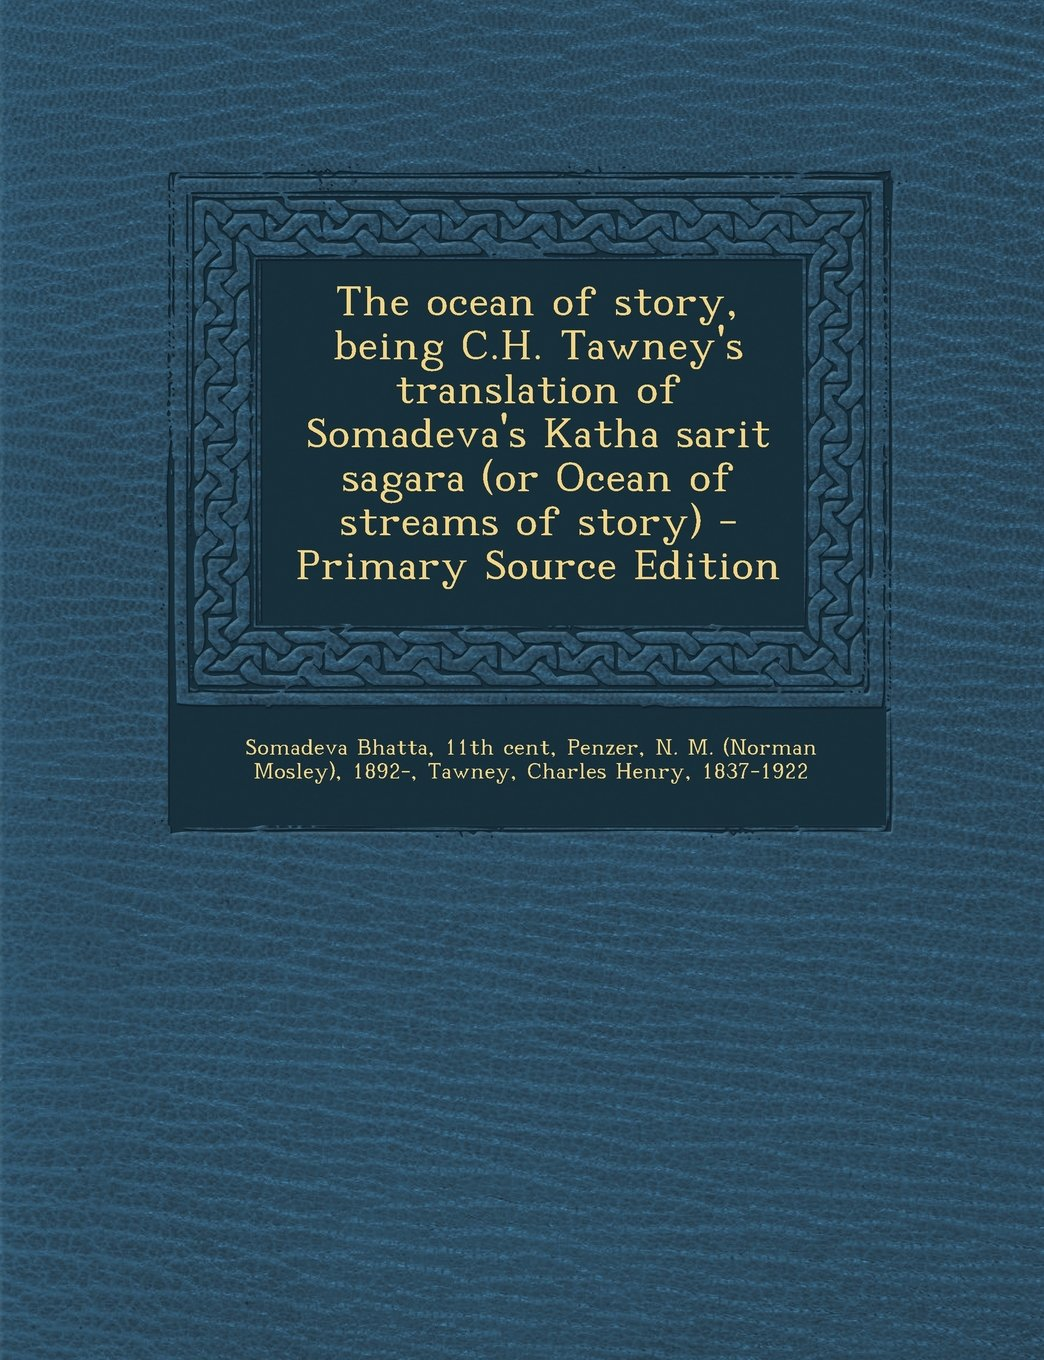 Download The ocean of story, being C.H. Tawney's translation of Somadeva's Katha sarit sagara (or Ocean of streams of story) - Primary Source Edition ebook